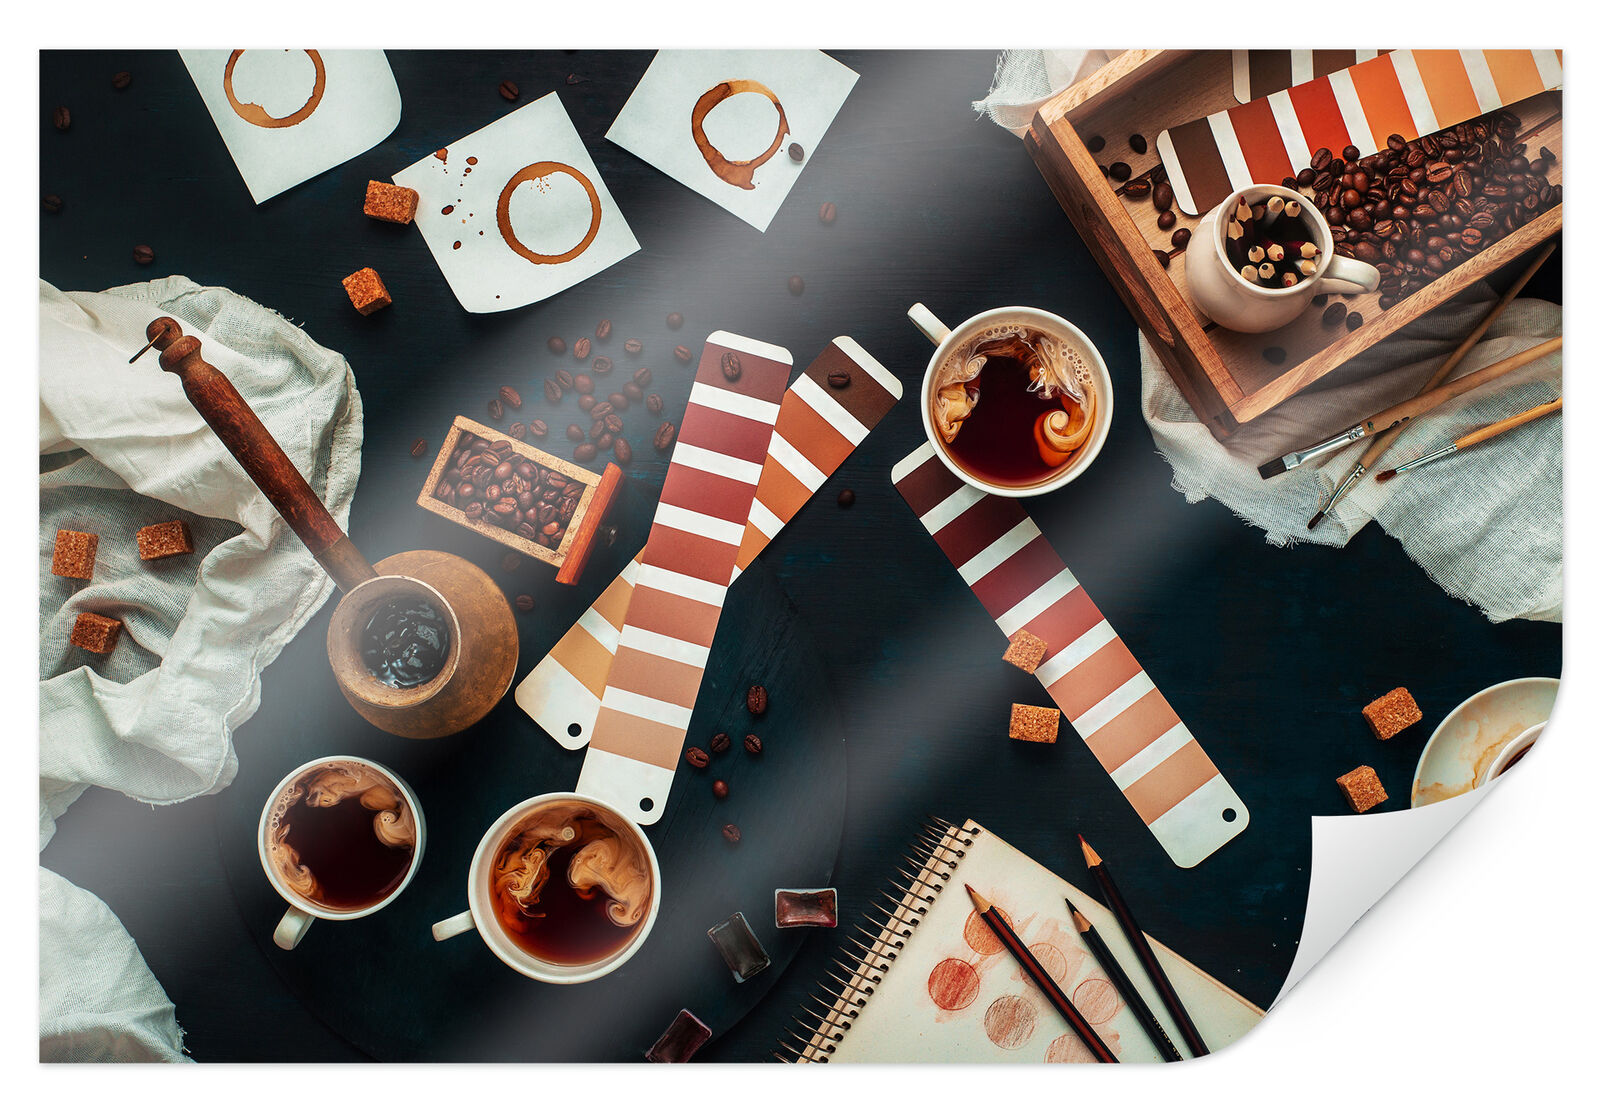 POSTER Belenko-Shades of coffee Muro Immagine Decorazione Carta speciale FSC